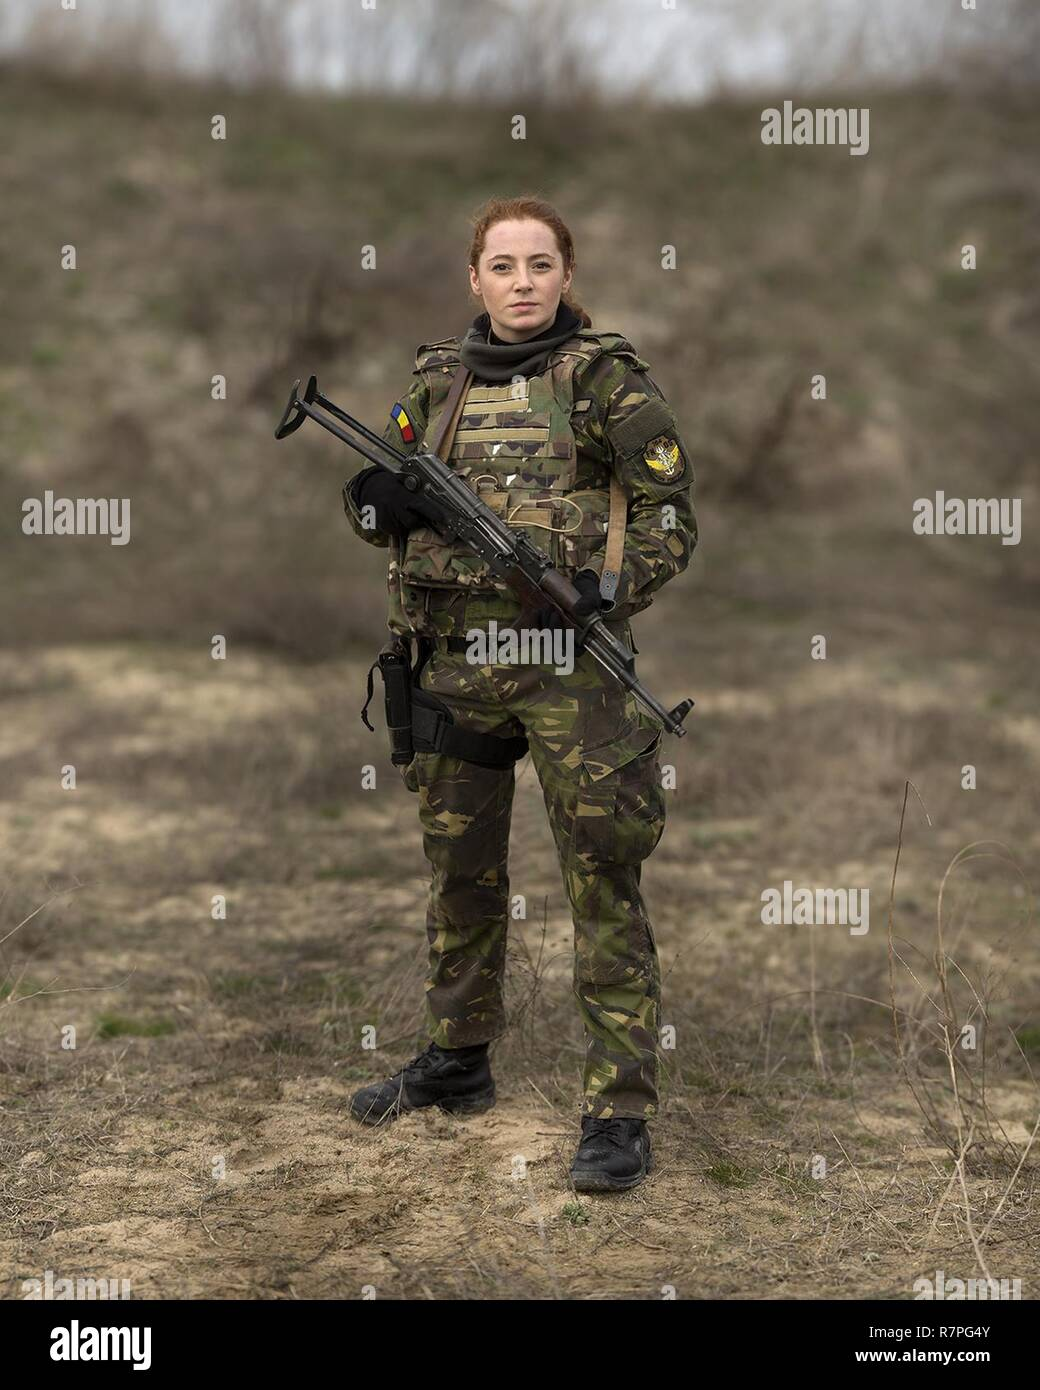 170320-M-IN448-243 CAPU MIDIA, ROMANIA (March 20, 2017)— Romanian Sailor Cpl. Pintilie Madalina, a communications specialist, poses for a portrait during a live-fire shoot with U.S. Marines of the 24th Marine Expeditionary Unit (MEU), Female Engagement Team, at Capu Midia training grounds in Romania March 20, during exercise Spring Storm 2017. The Marines trained for three days with their female Romanian counterparts in radio communication, detainee handling, personal security detail, tactical site exploitation and more, culminating in a live-fire rifle and pistol swap between the two forces.  Stock Photo